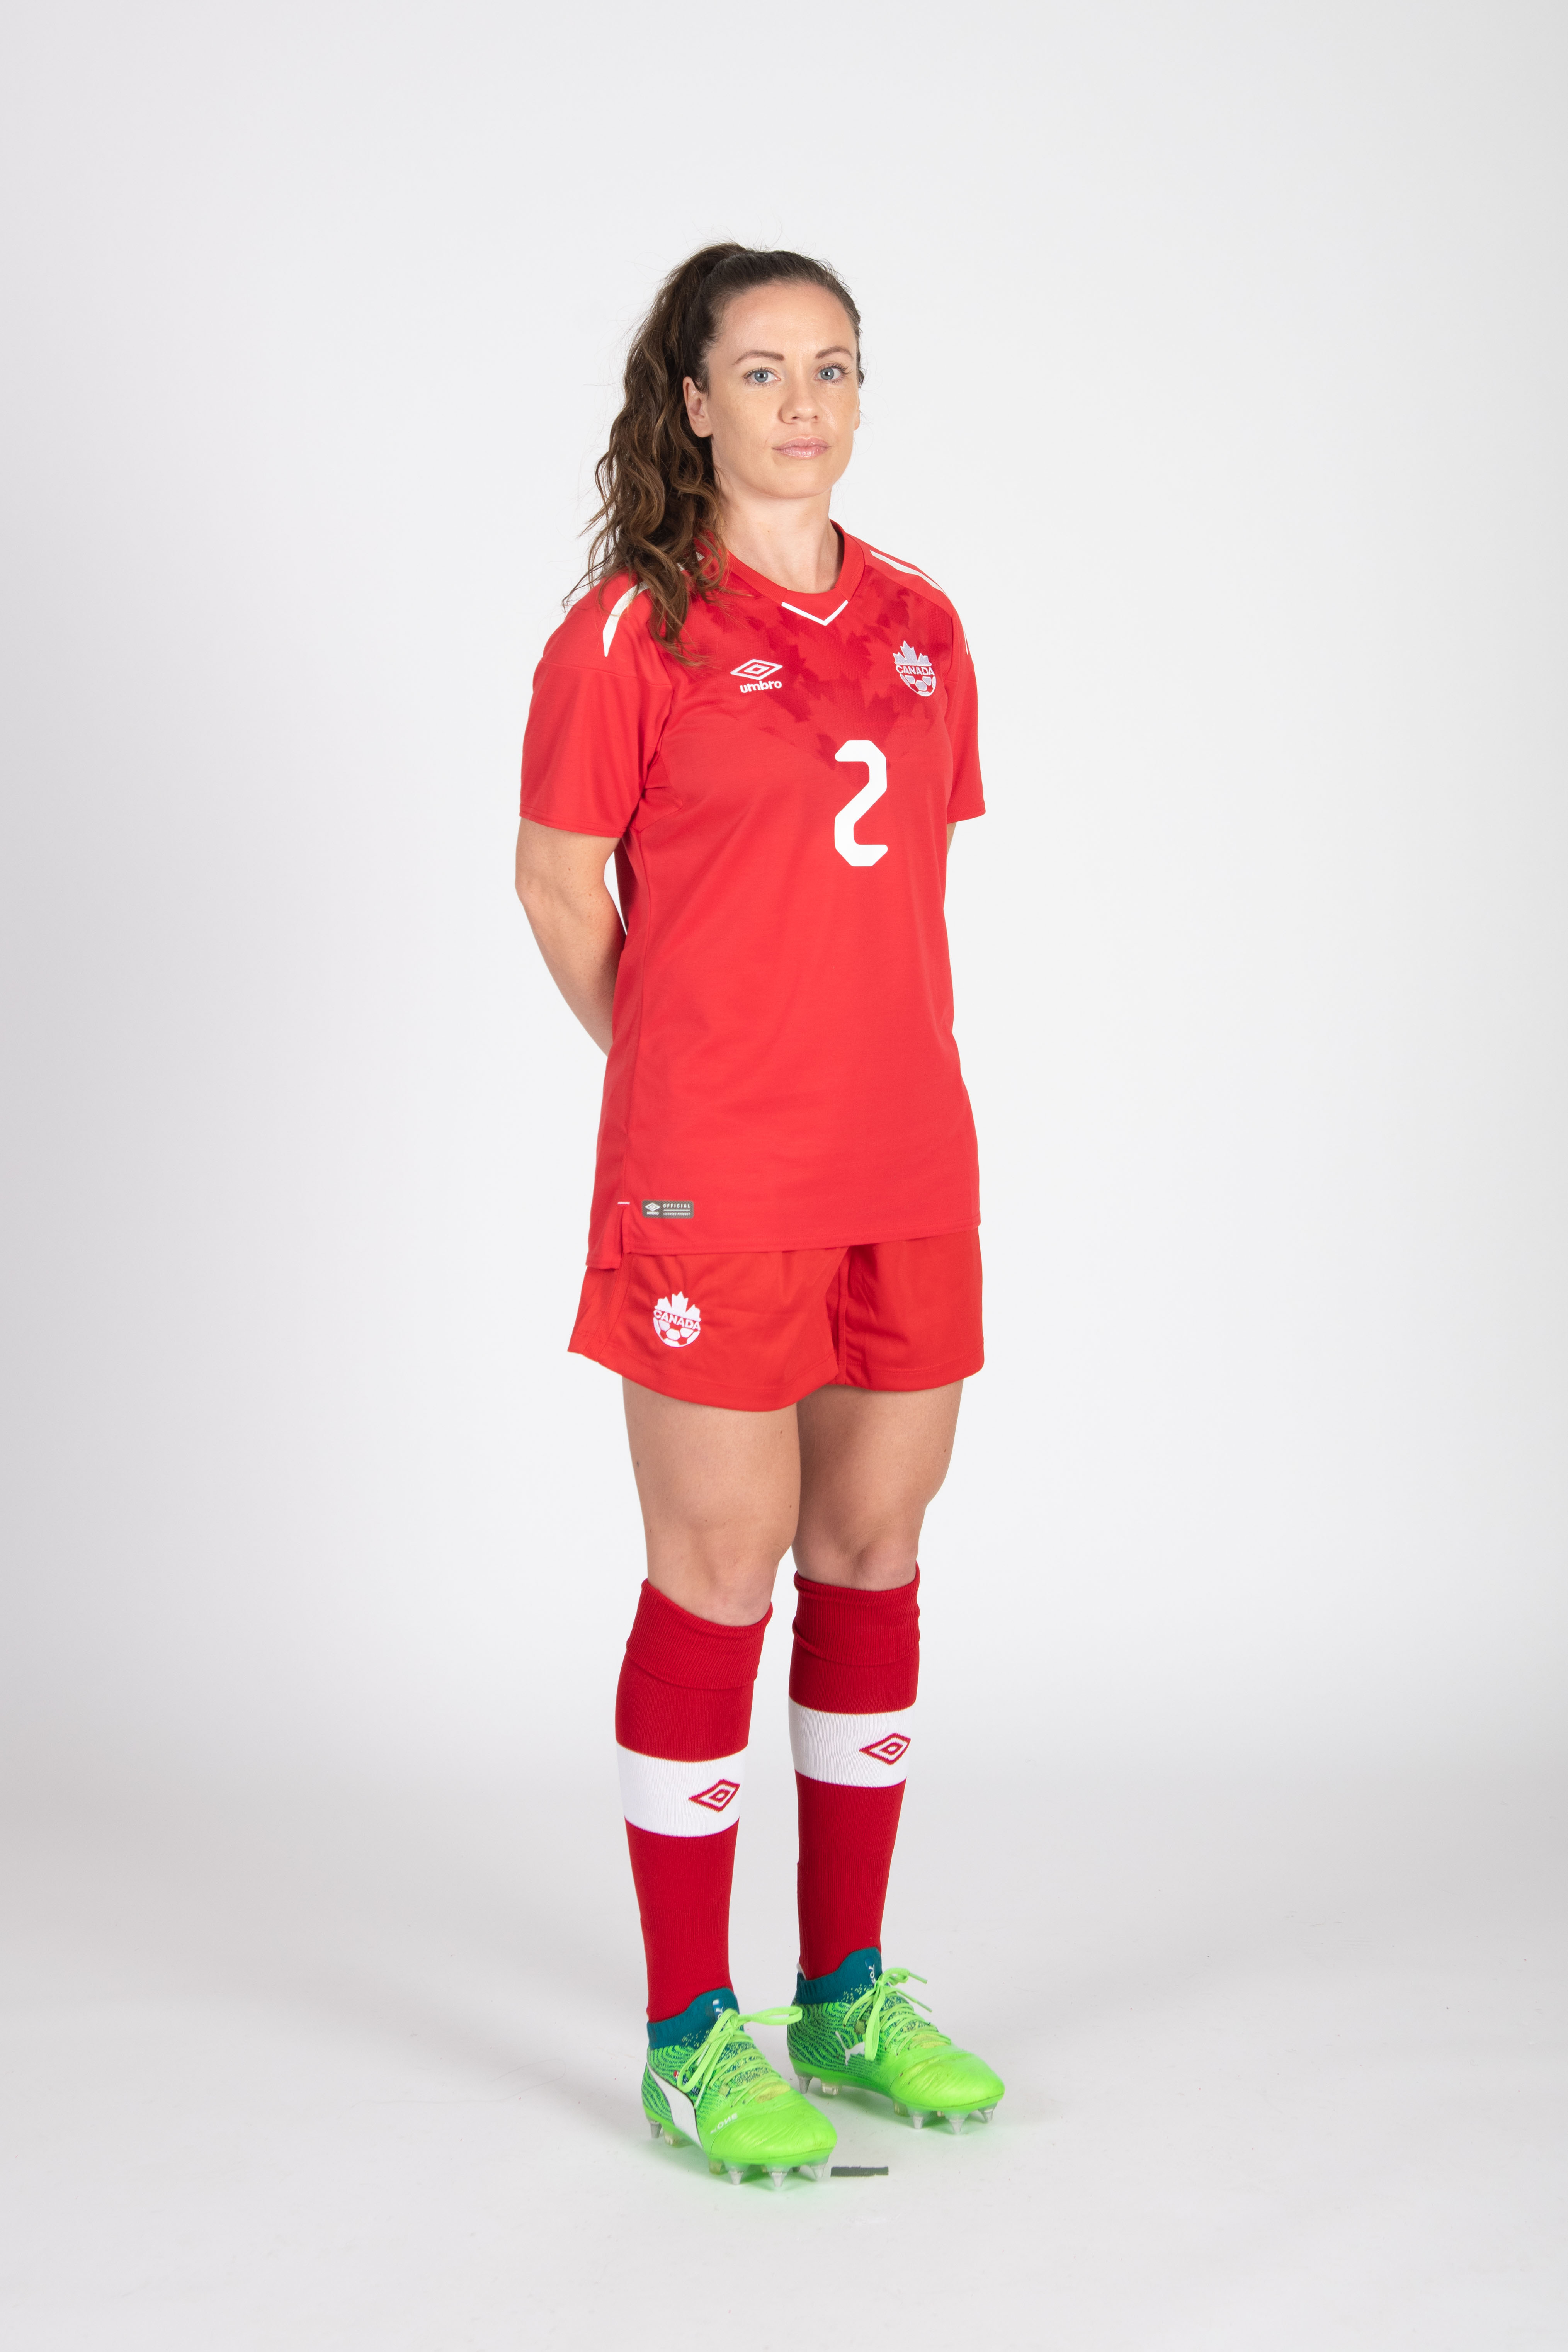 20180604_CANWNT_Chapman_byBazyl19